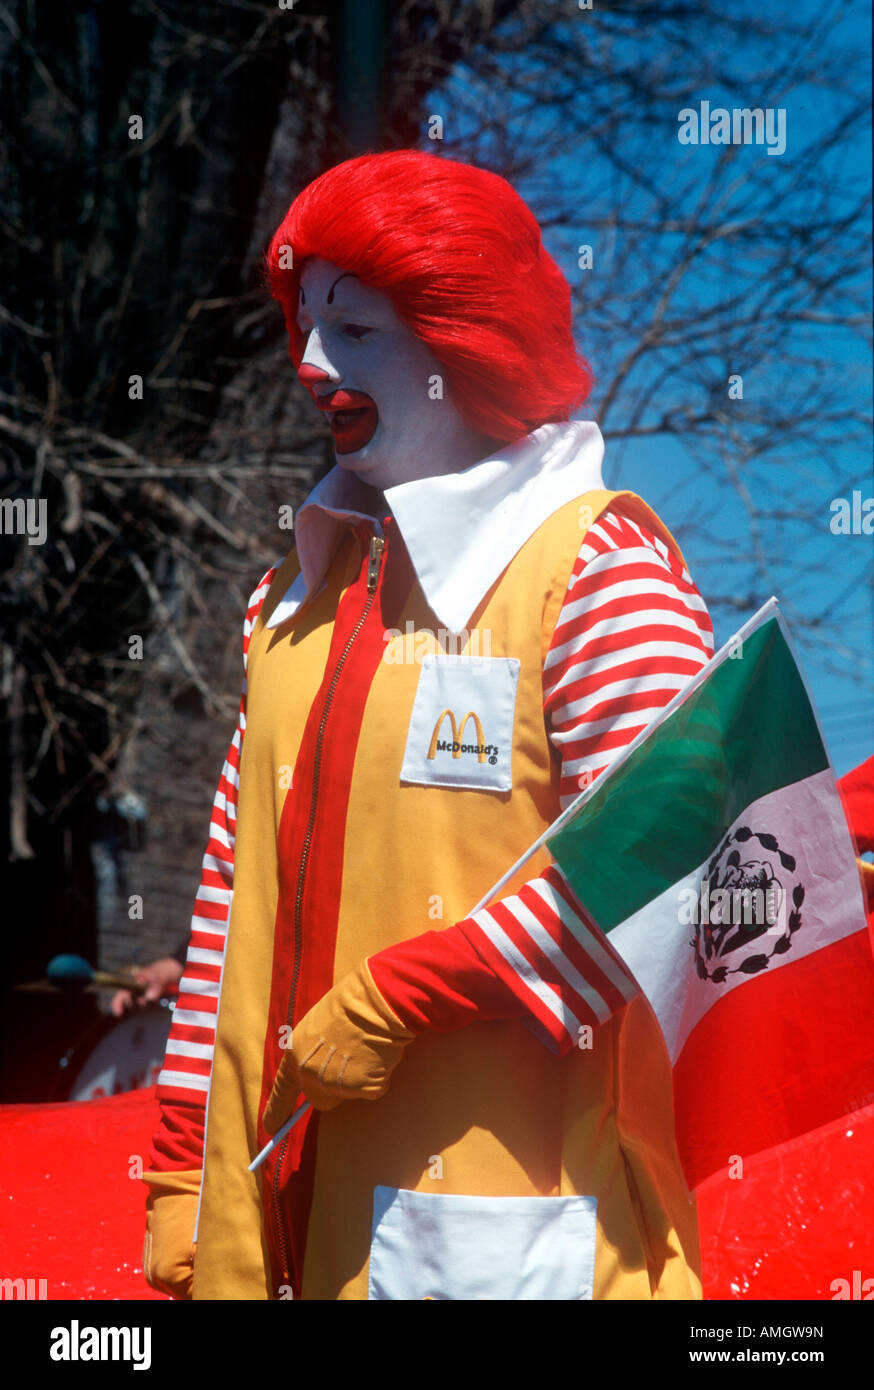 ronald mcdonald with mexican flag stock photo royalty free image